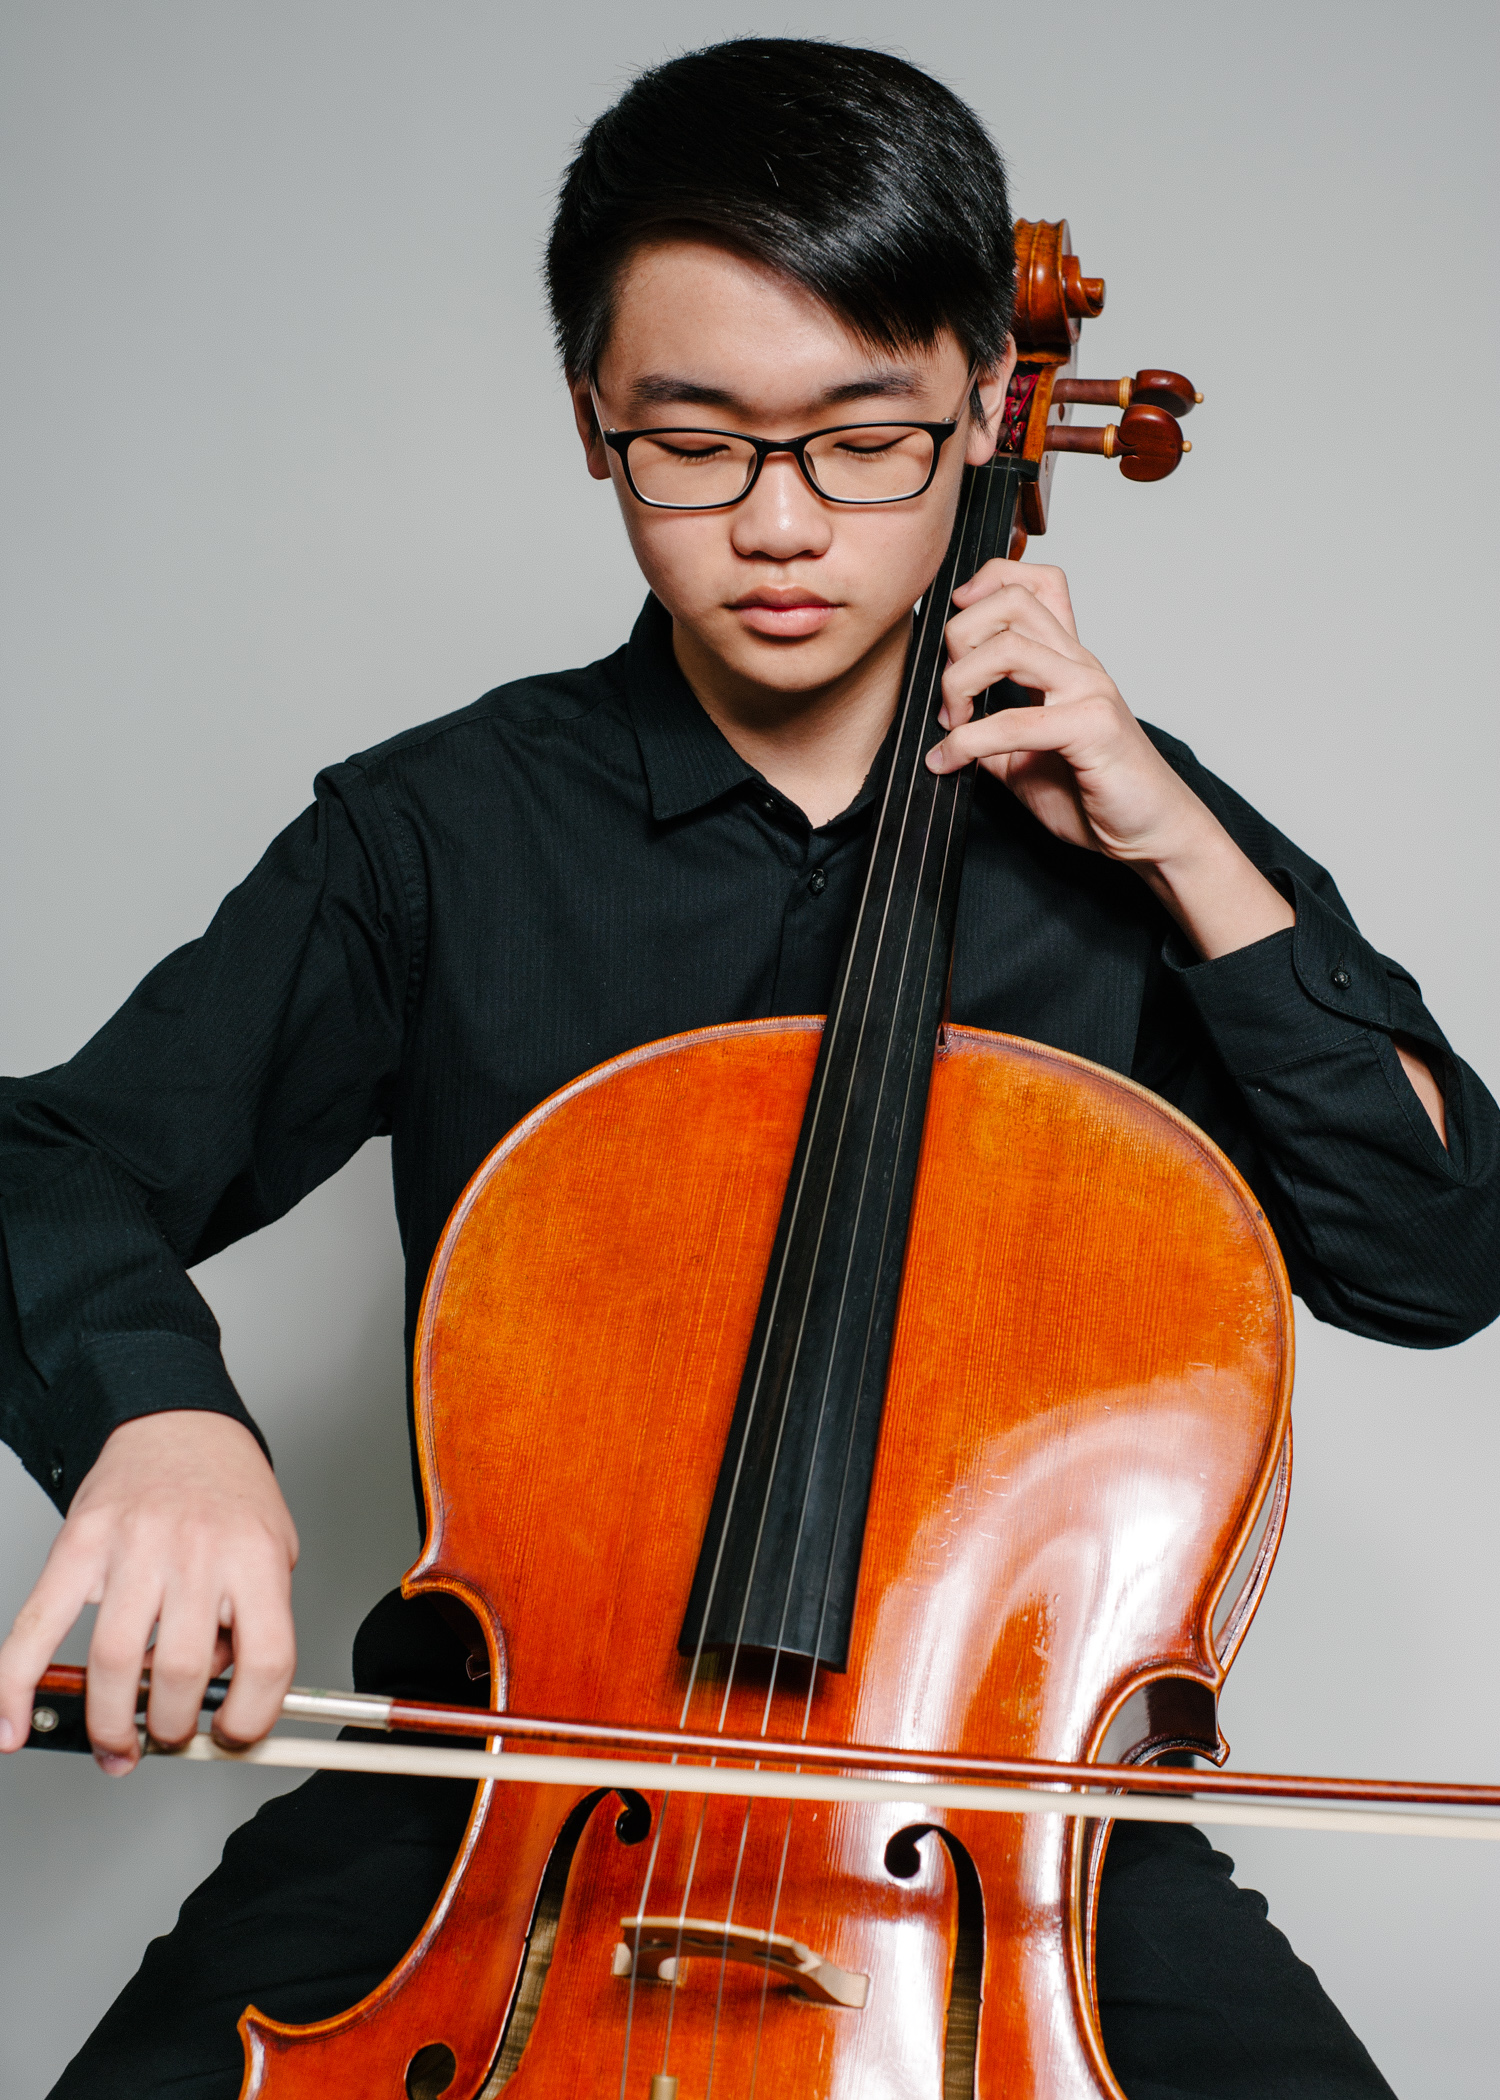 WUJIN KIM - Wujin Kim, 17, currently studies cello under Clara Minhye Kim and is coached in chamber music by Asya Meshberg. He is currently a member of the New York Youth Symphony and served as the principal cellist of Principal Orchestra in the Norwalk Youth Symphony last year. In 2014 and 2015, Wujin was the winner of the Junior Competition and Senior Competition of the Young Artist Festival sponsored by the Norwalk Symphony Orchestra. He has also performed with the American Chamber Orchestra after winning the Concerto Competition. In 2017, Wujin was selected as a winner of the Norwalk Youth Symphony Concerto Competition and to be principal cellist of the CMEA All-State Orchestra. He has also won honorable mention in the New York Music Competition and the Norwalk Symphony Orchestra Concerto Competition.In the summer of 2018, Wujin studied with Steven Doane at the Bowdoin International Music Festival. He also has attended the Chamber Music Institute for Young Musicians and attended Elm City Chamberfest as the recipient of the Cello Scholarship in 2016. Wujin enjoys playing chamber music with his friends to support organizations such as Music for Youth, the American Cancer Society, St. Jude Children's Hospital, Grace Farm's Community Dinner, and the YMCA of Greenwich.